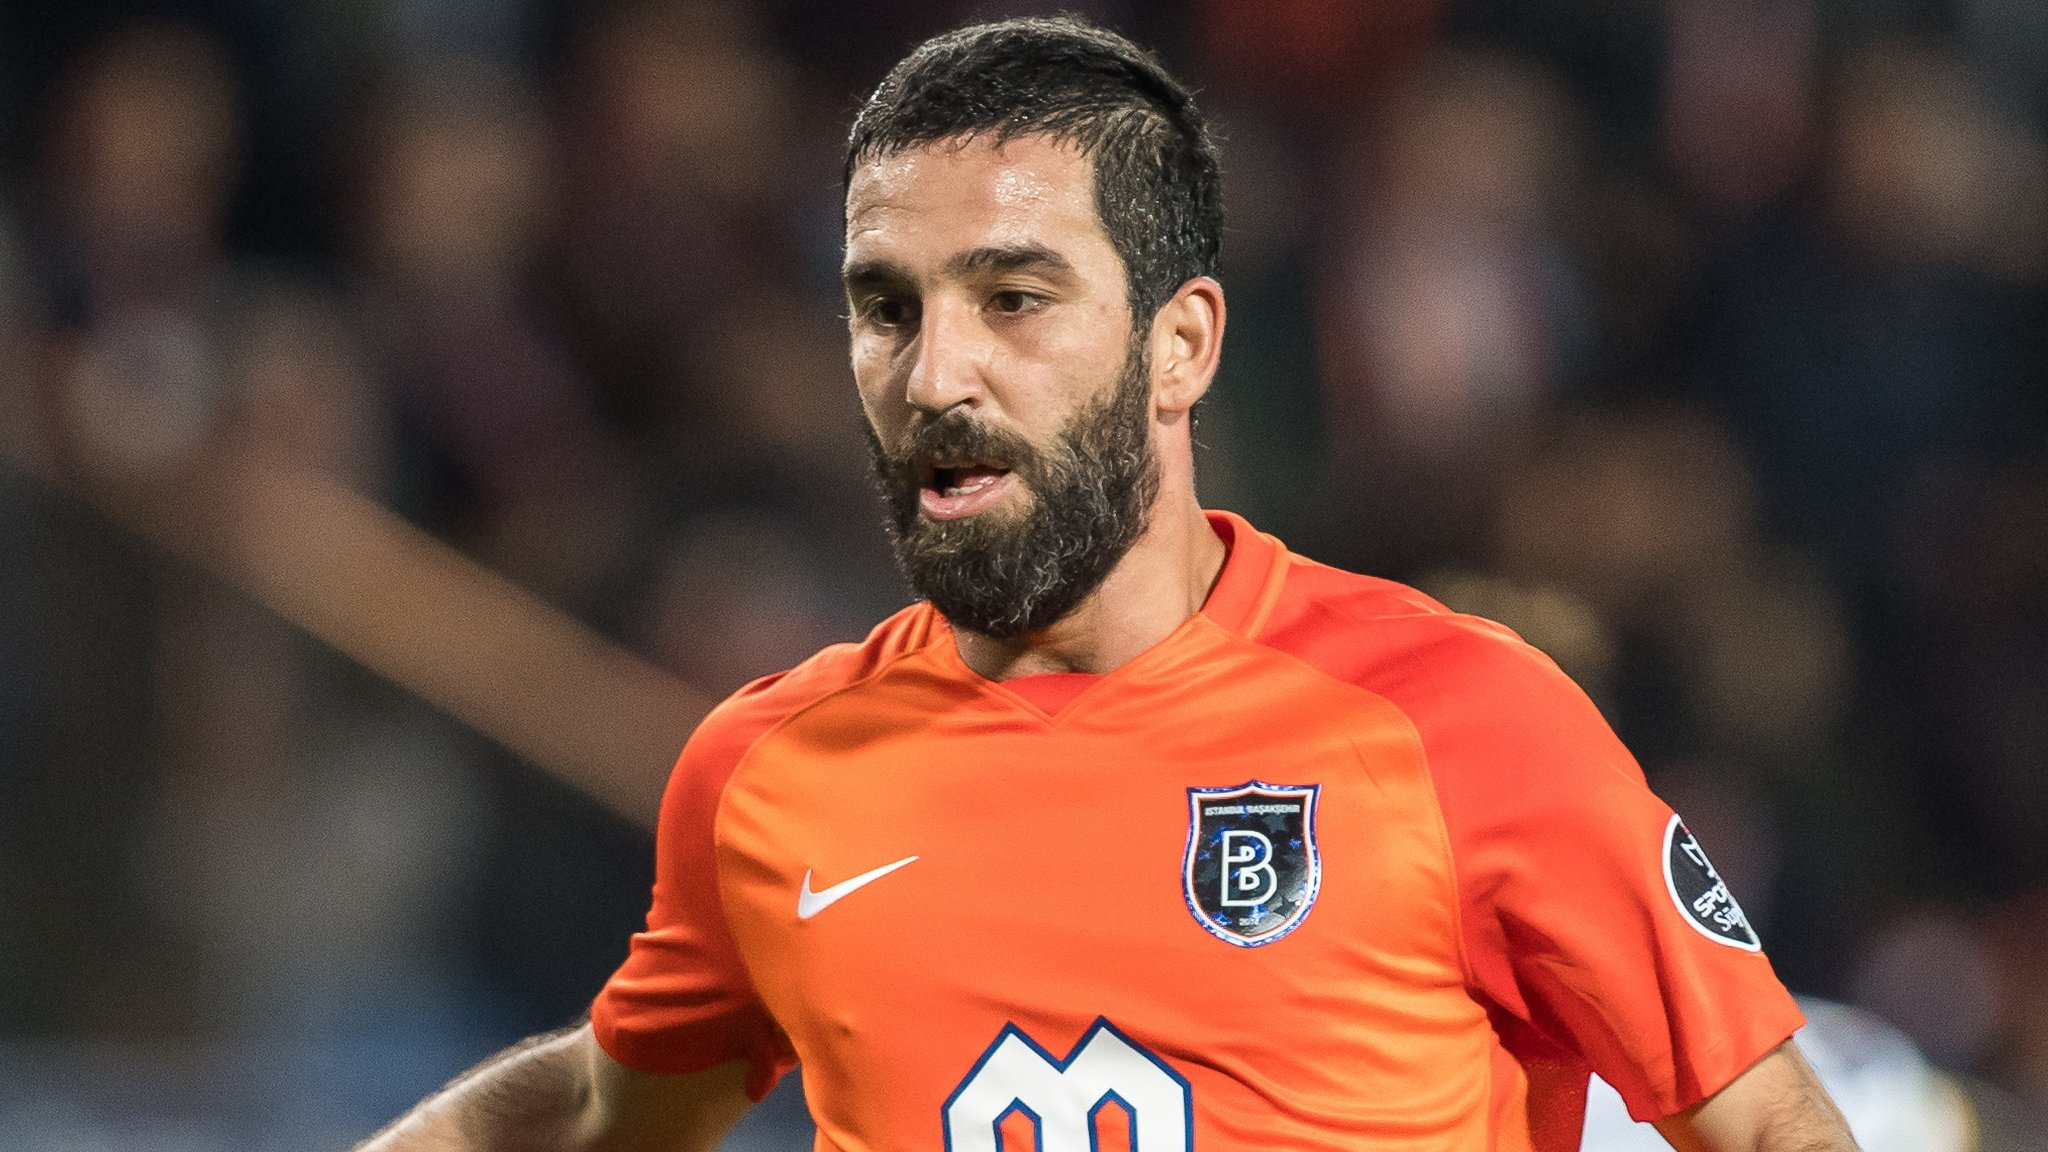 Turan questioned over Istanbul nightclub 'attack'